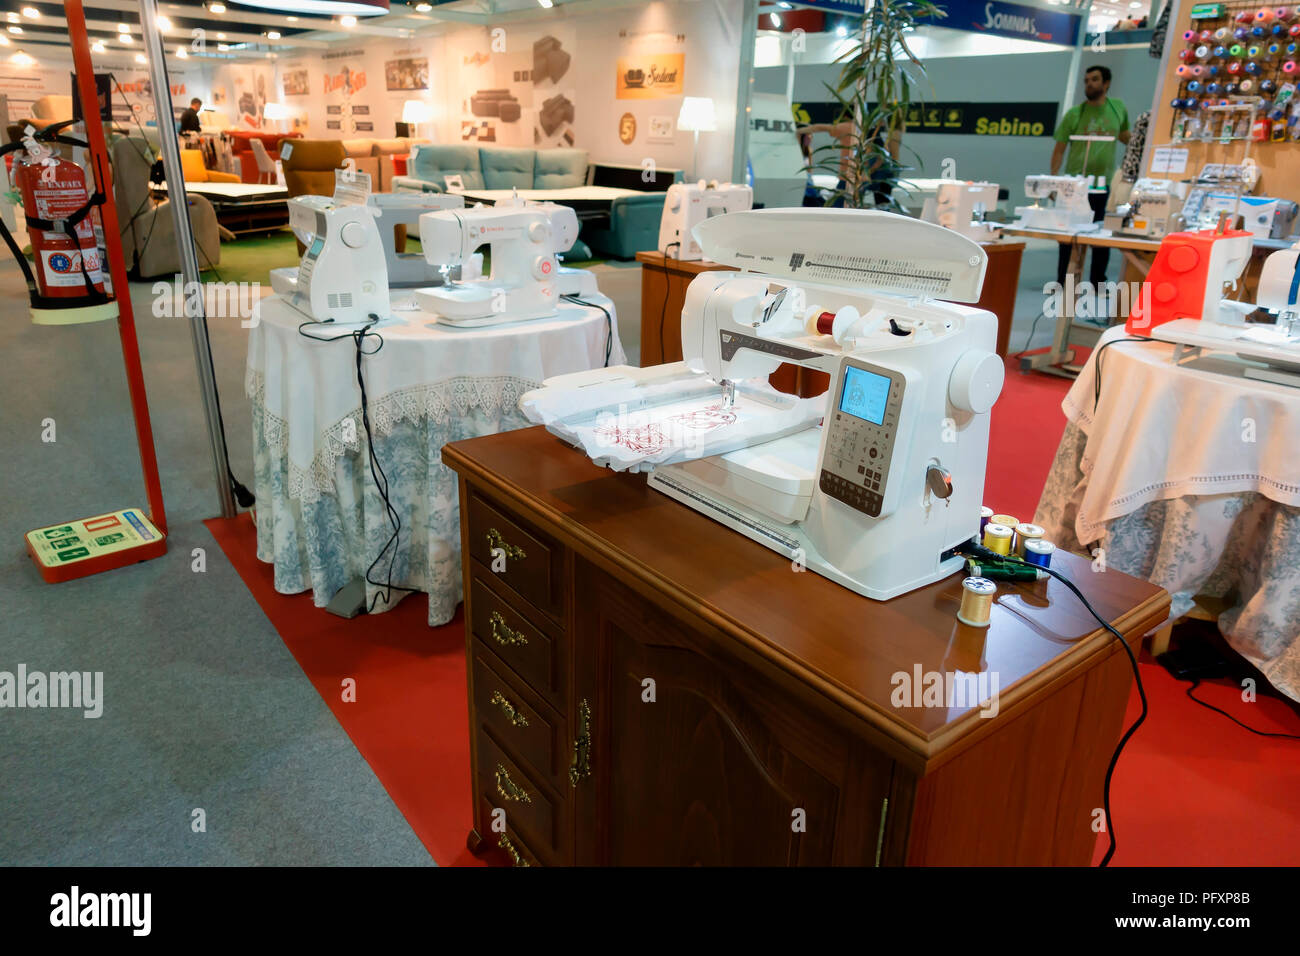 Husqvarna Viking automatic digital sewing and embroidery machine exhibited at the Fair Trade of Gijon 2018. August 16, 2018. Spain. - Stock Image